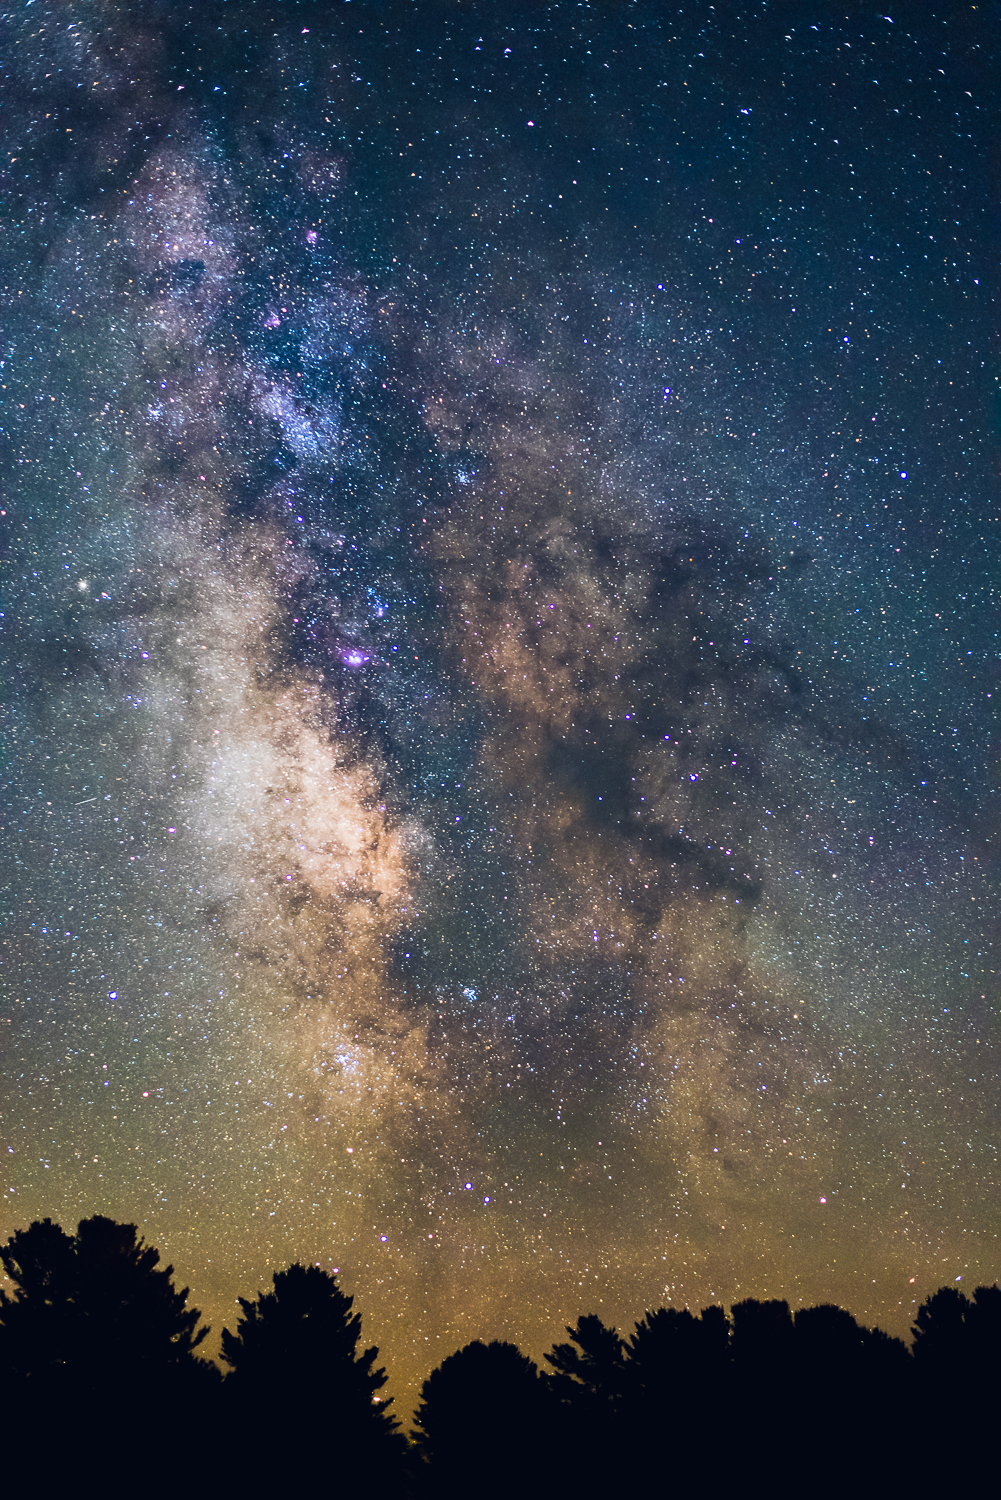 Milky Way Close-Up